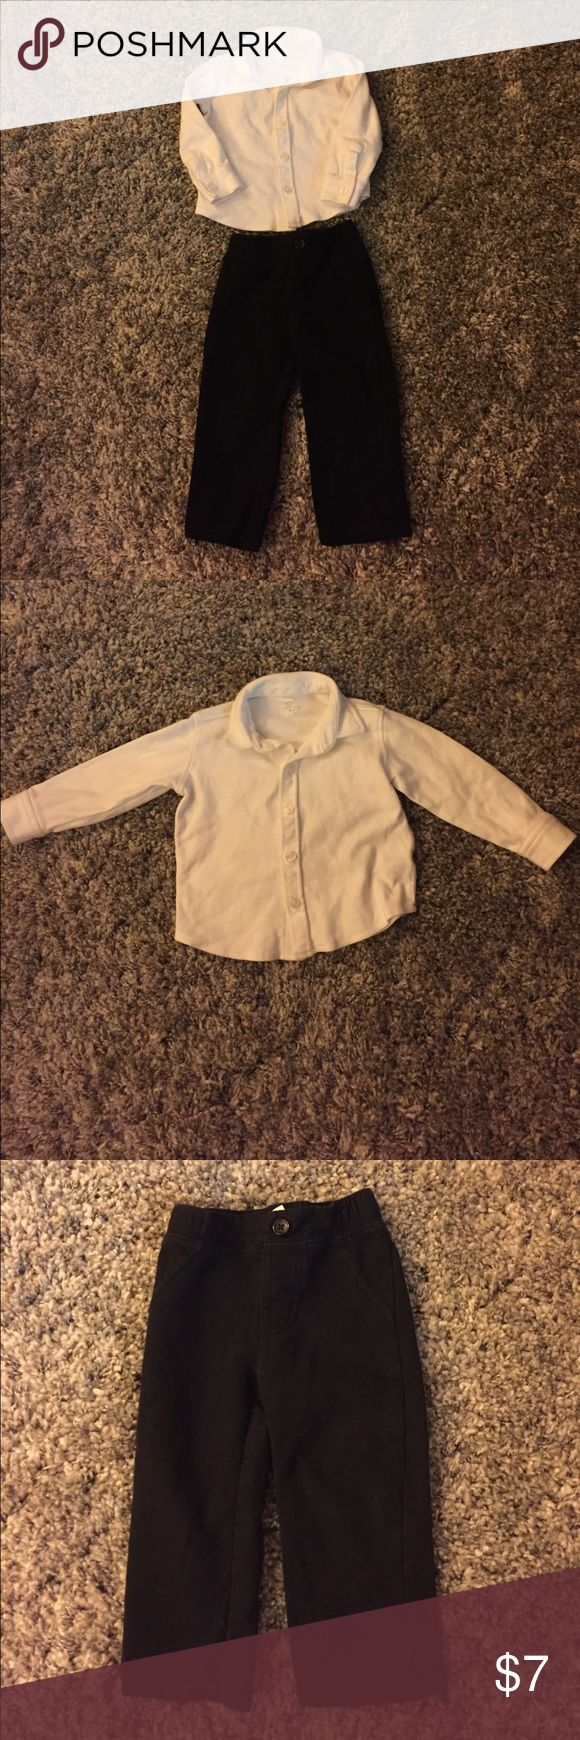 Boys dress outfit Boys button up dress shirt and pants in good condition. There is a small mark on the sleeve as noted in the 4th picture. These are 100% cotton so your little one can be comfy and stylish! Koala Kids Matching Sets